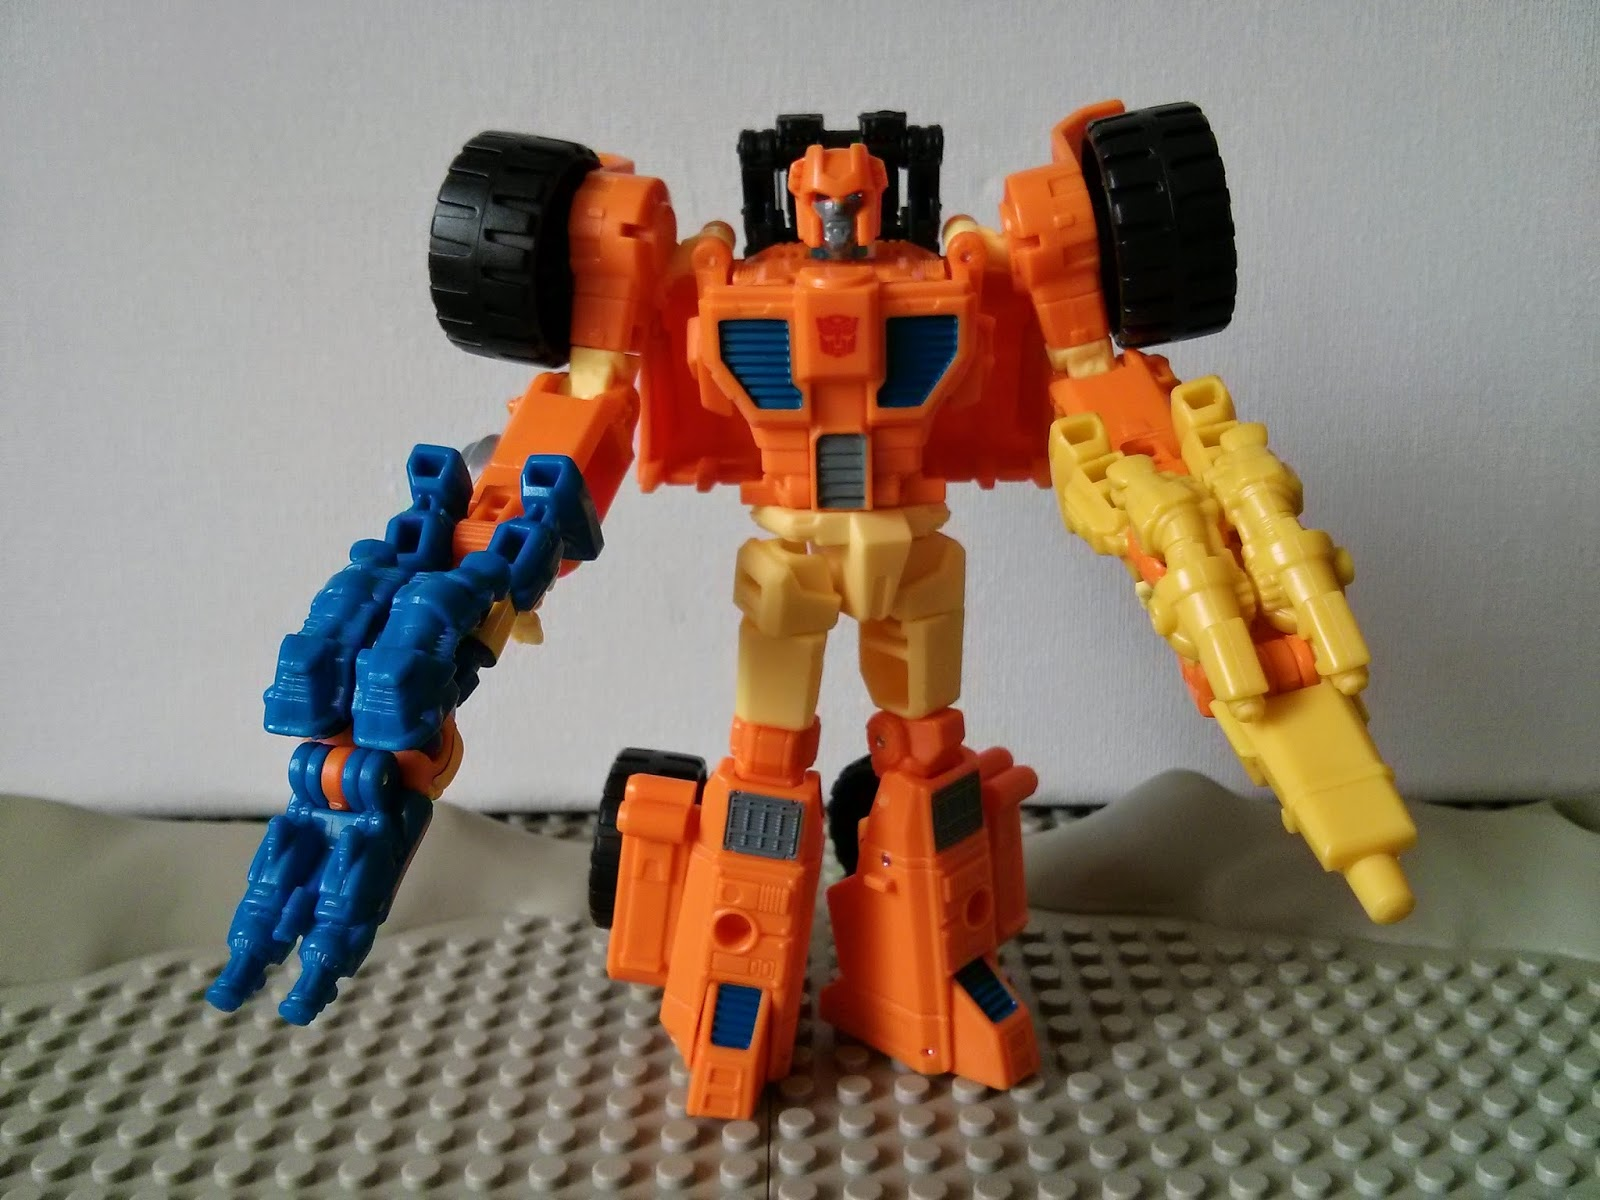 Scoop with caliburst and holepunch